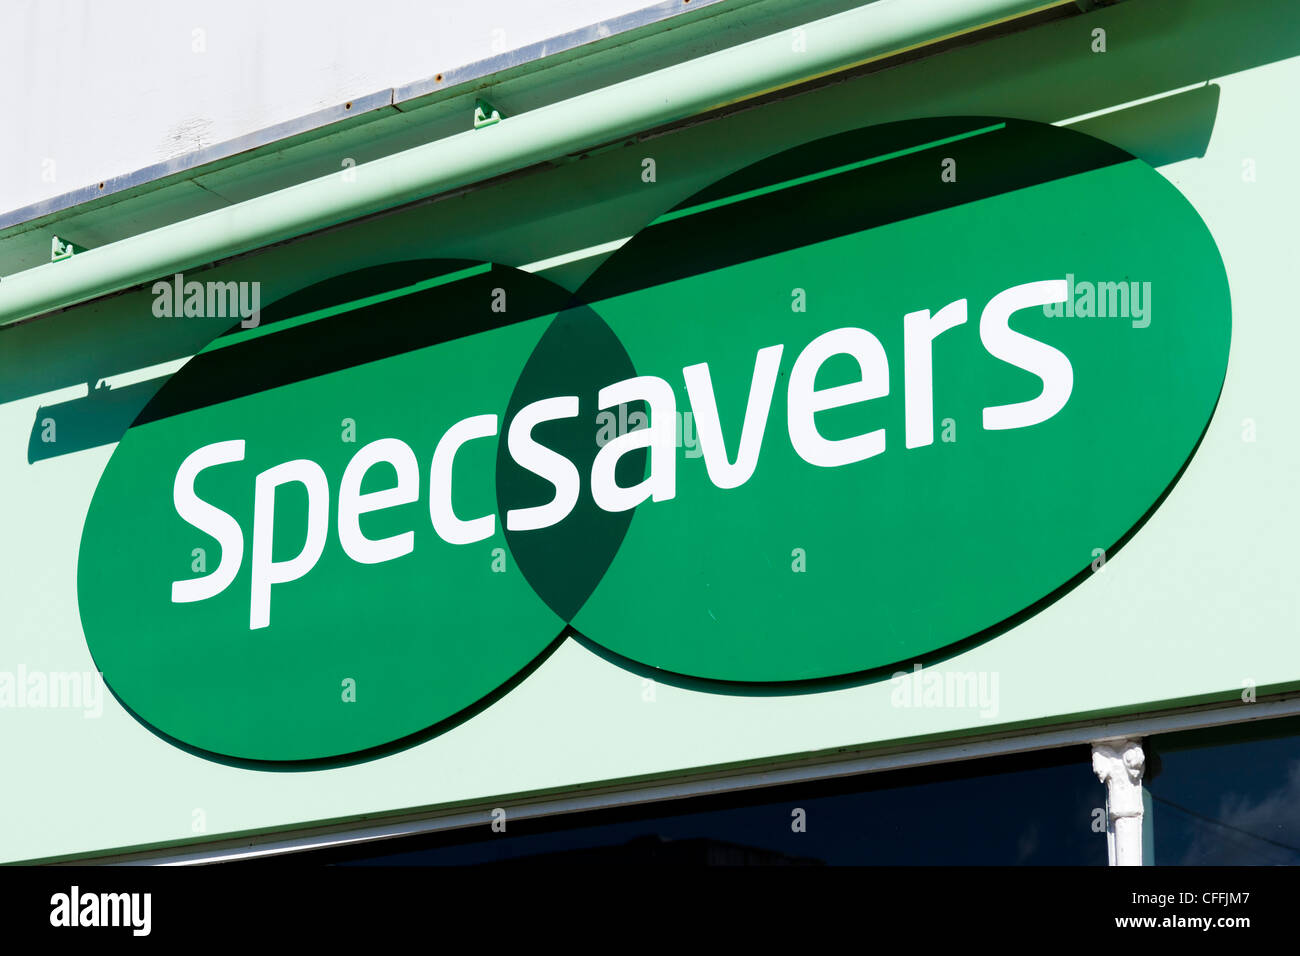 Specsavers optician on the High Street in Burton-upon-Trent, Staffordshire, England, UK - Stock Image